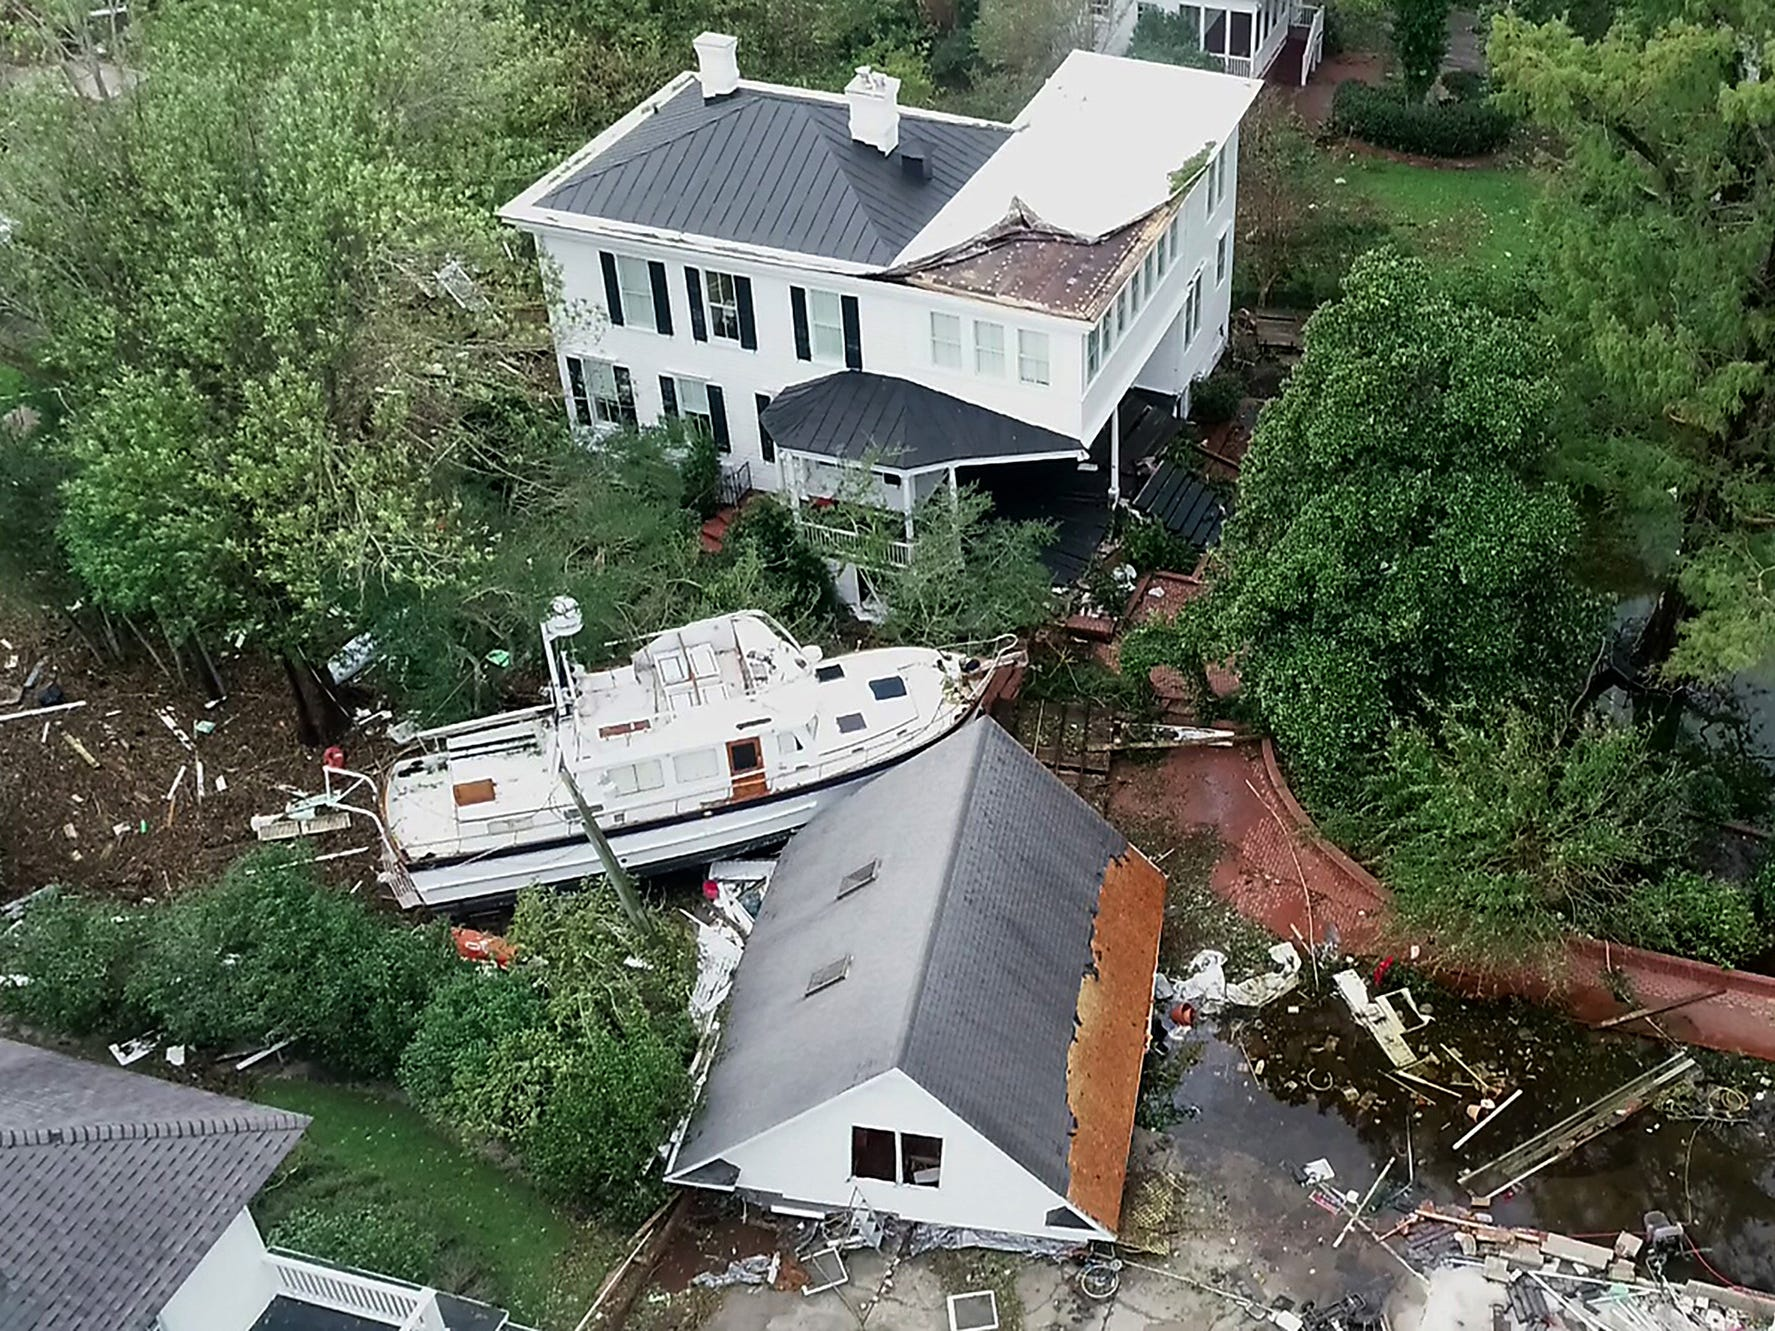 A yacht sits between two homes in the historic downtown neighborhood in New Bern, N.C. on Sunday morning on Sept. 16, 2018. A homeowner said the yacht drifted from across the river in Bridgeton.